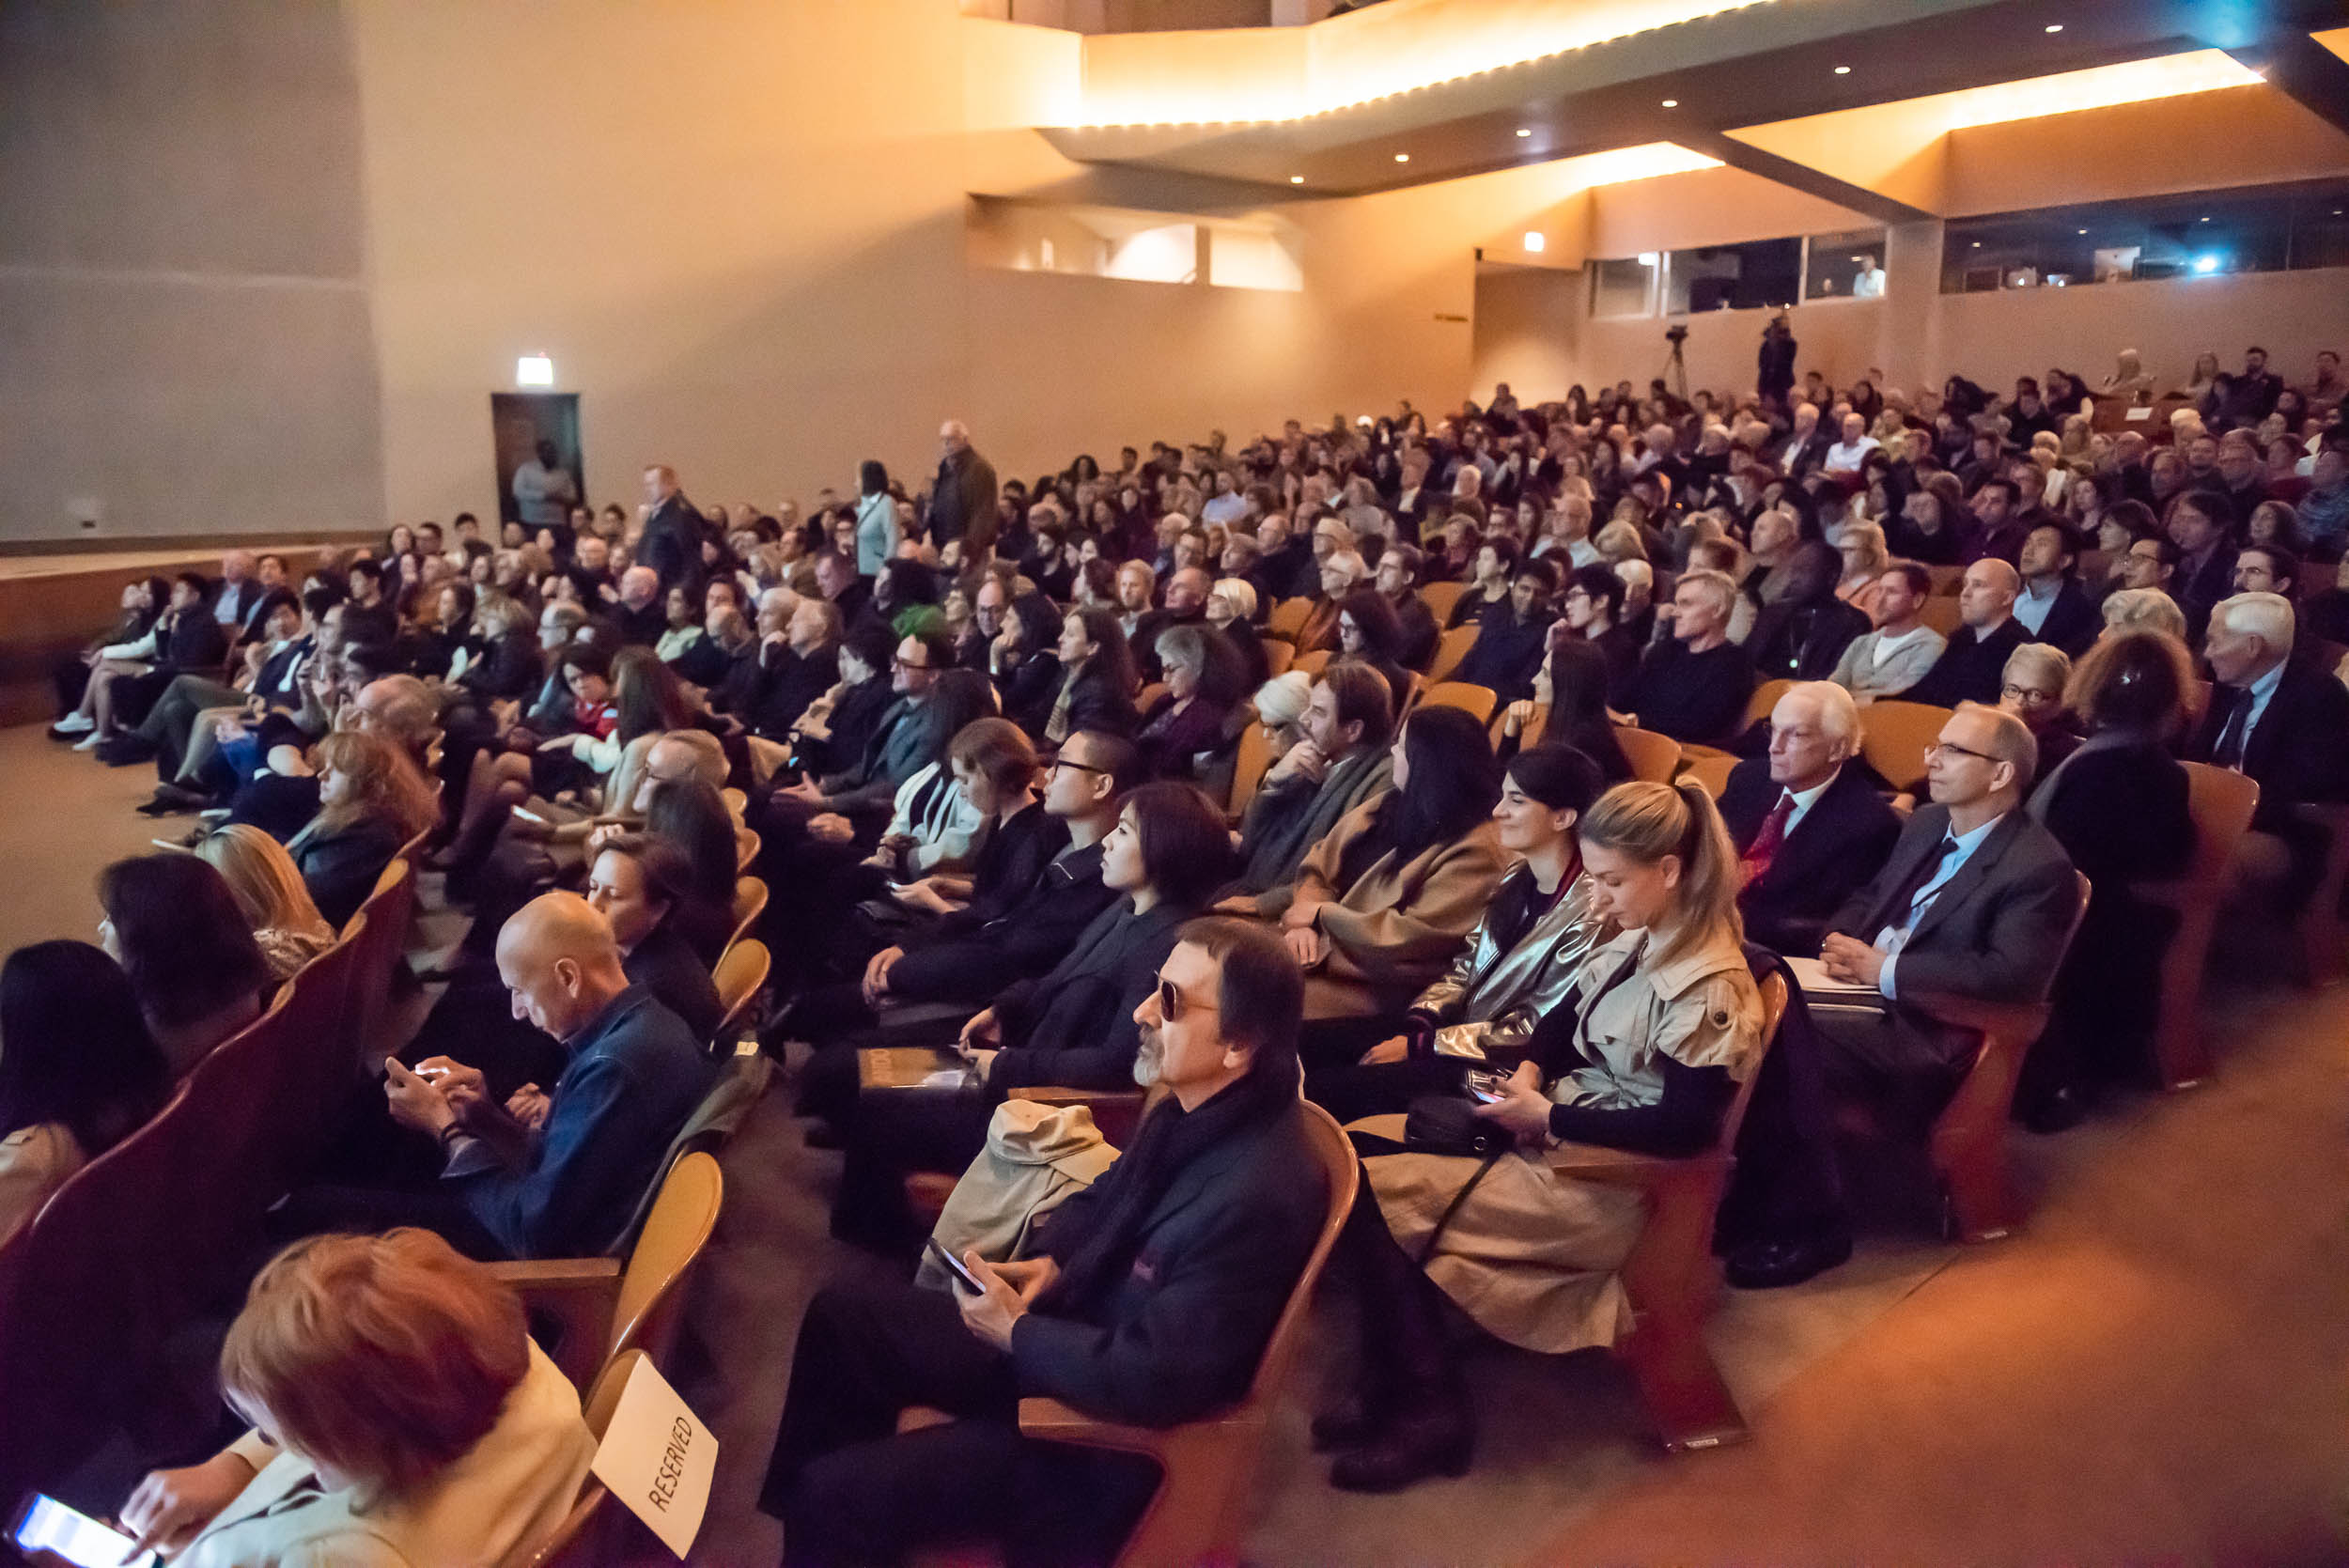 181011 - Tadao Ando Lecture - mark campbell photography-8_Resized.jpg